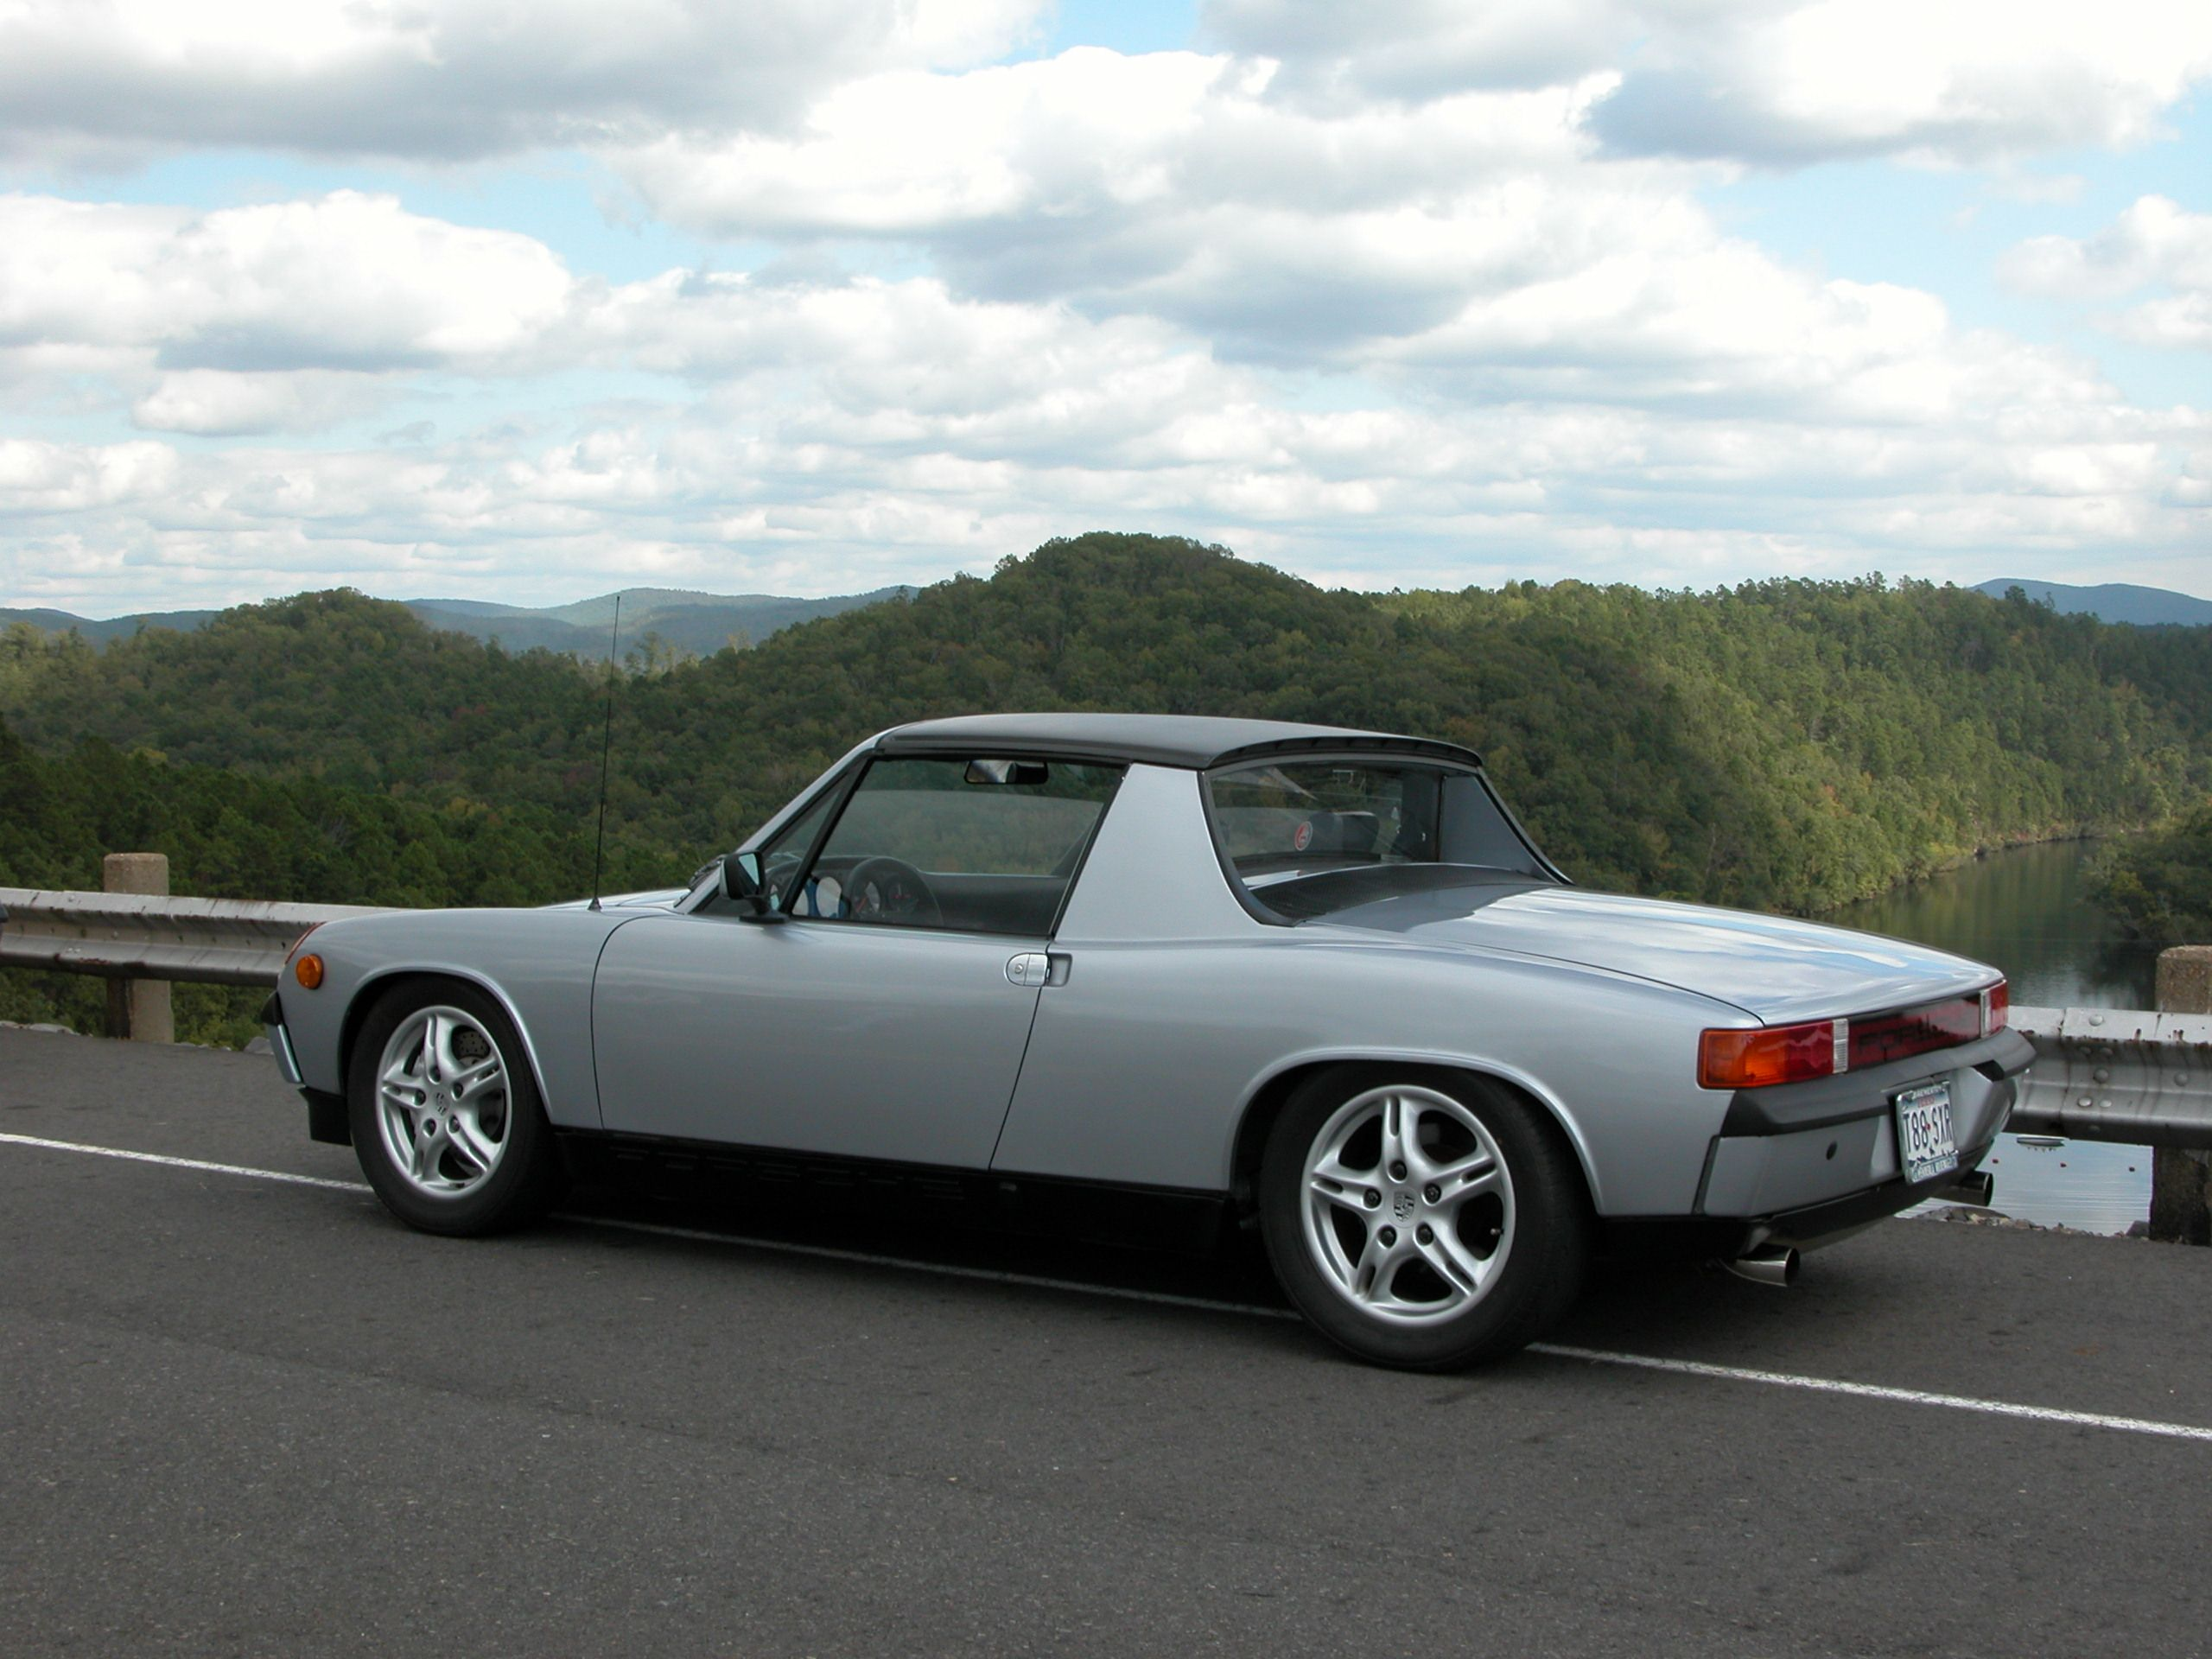 silver porsche 914 porsche pinterest porsche 914. Black Bedroom Furniture Sets. Home Design Ideas